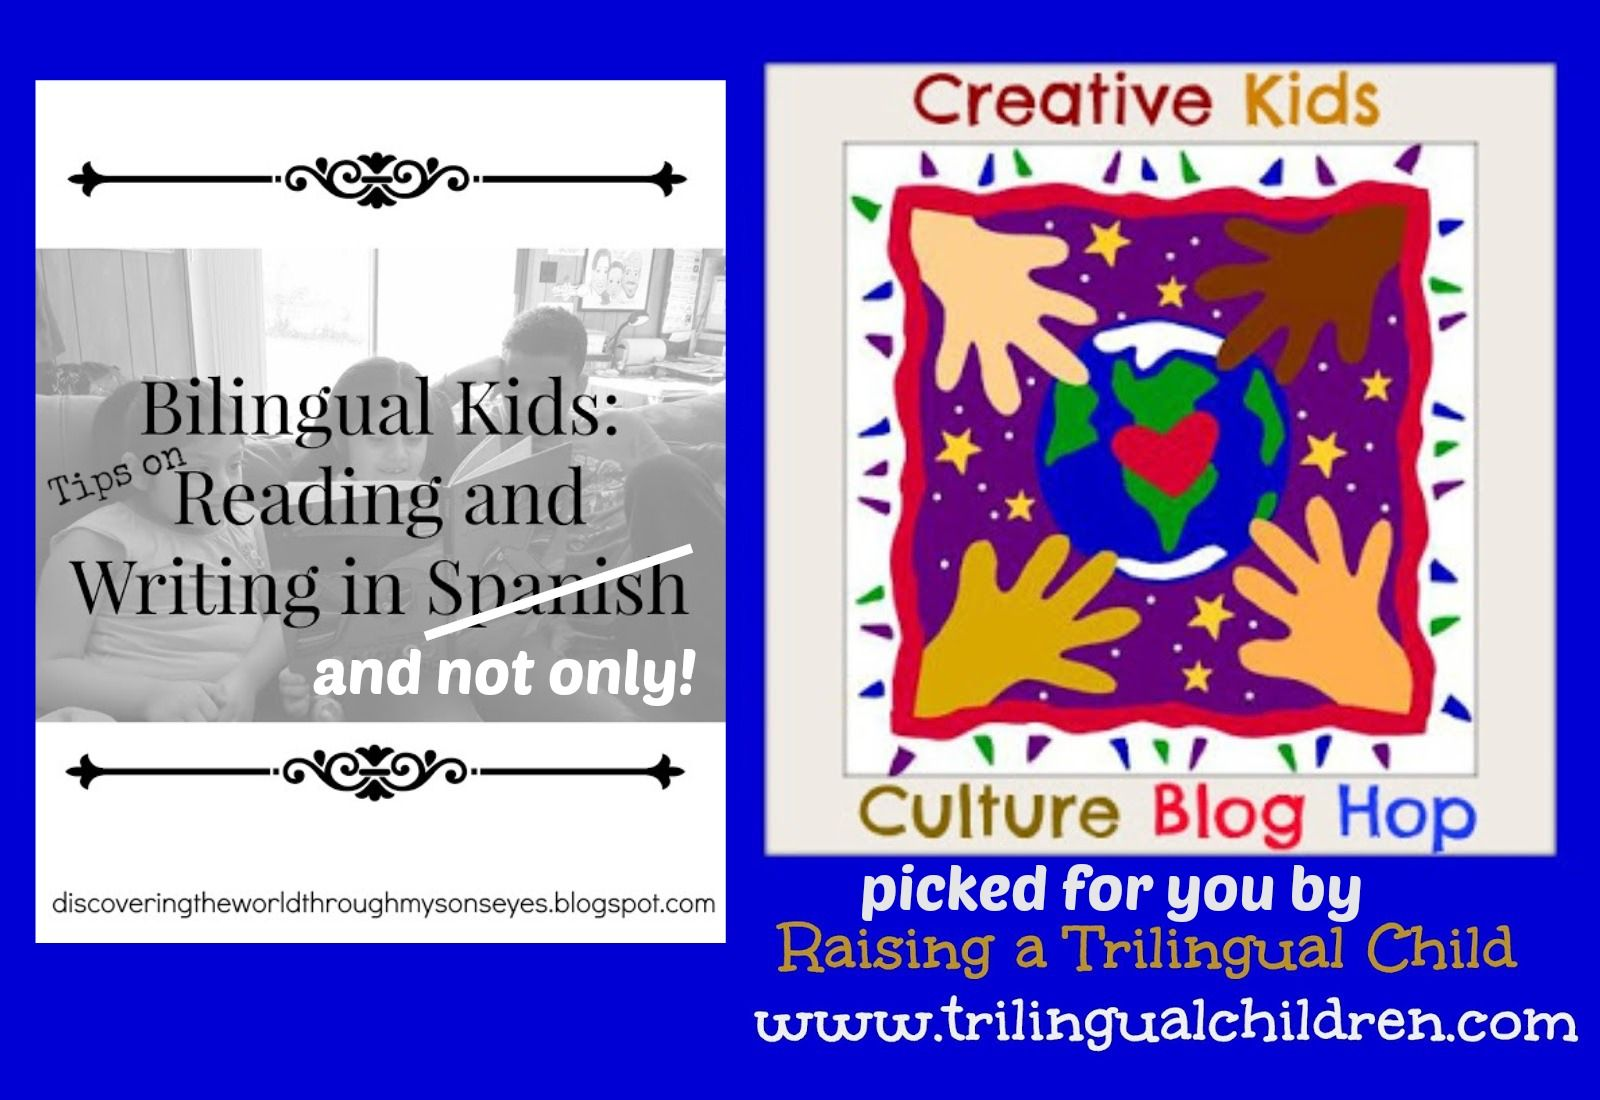 Creative Kids Culture Blog Hop #37: Bilingual Kids: Reading and Writing